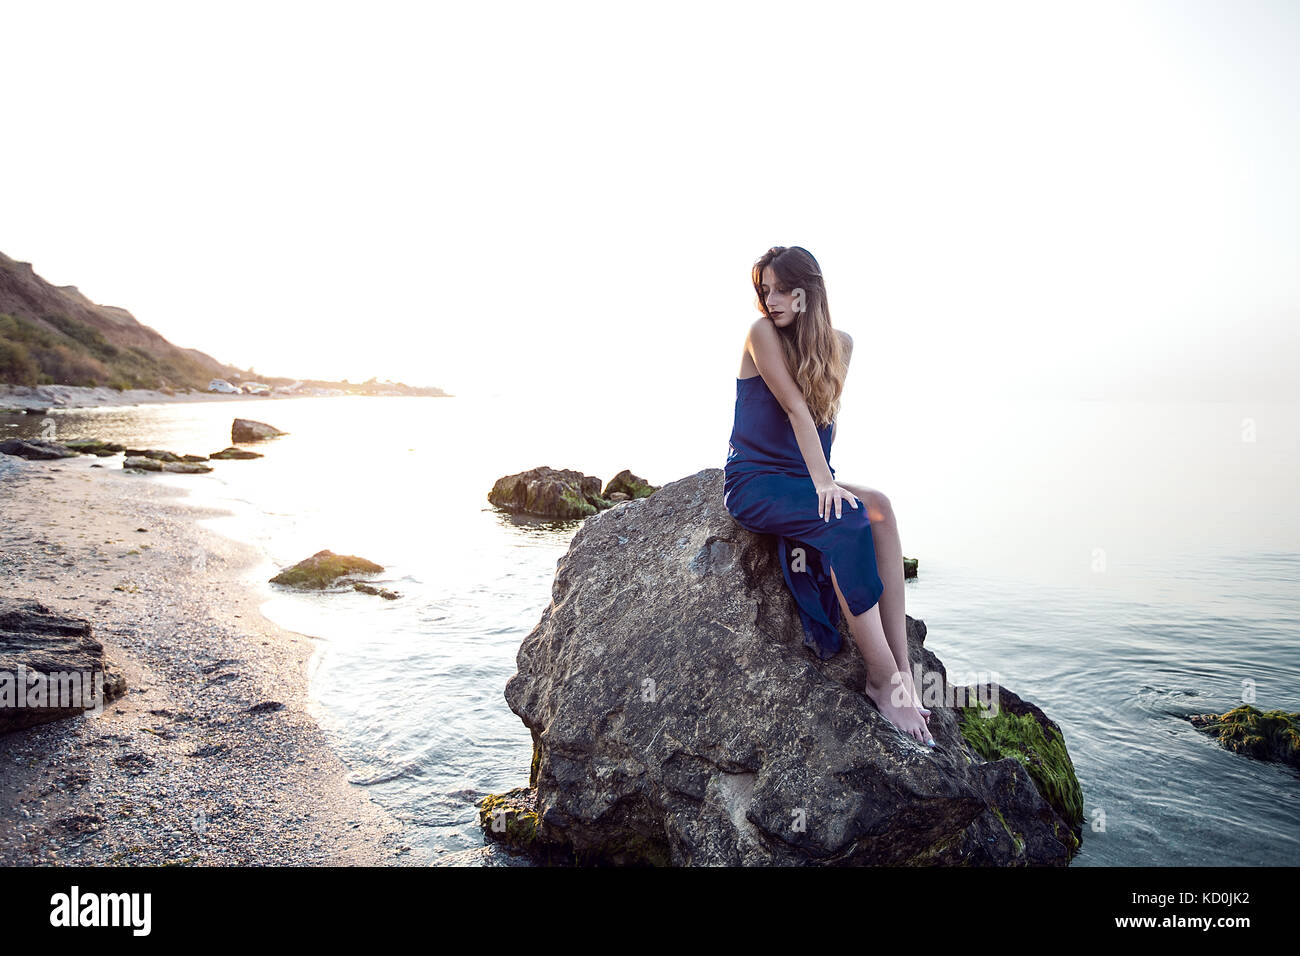 Young woman sitting on beach rock, Odessa, Ukraine Banque D'Images